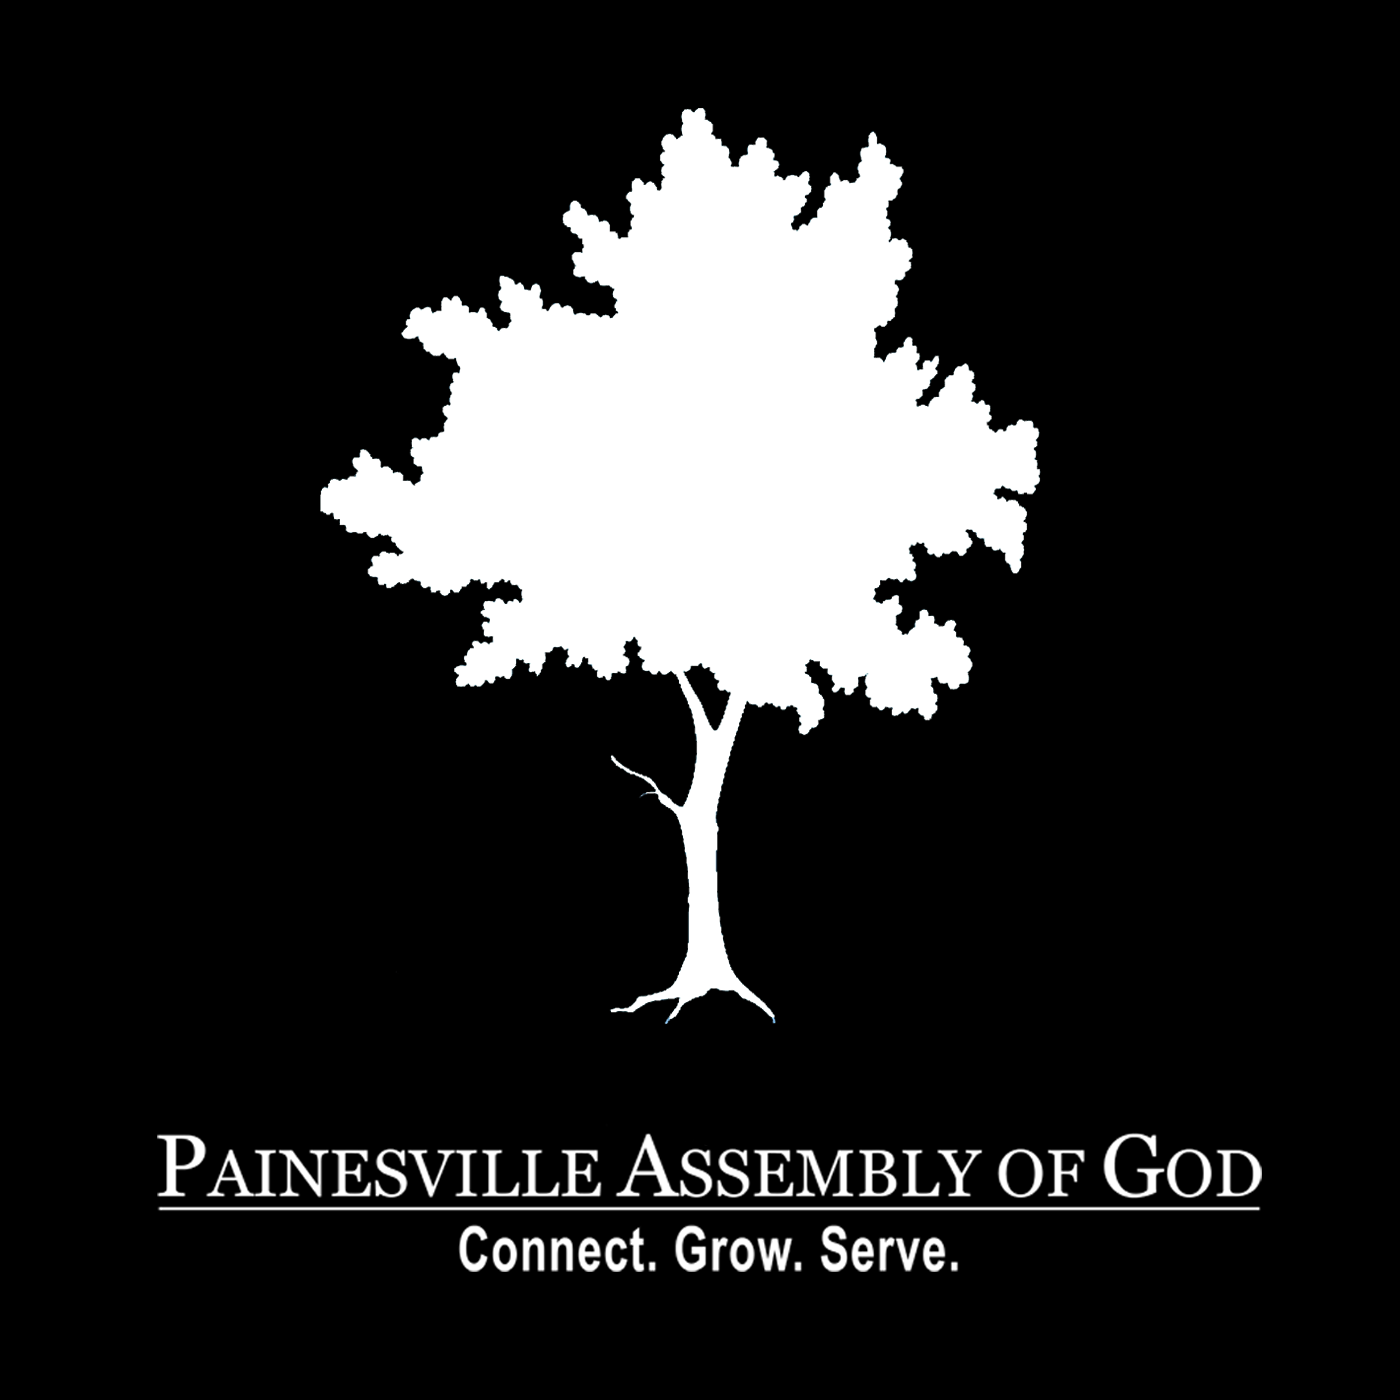 Painesville Assembly of God